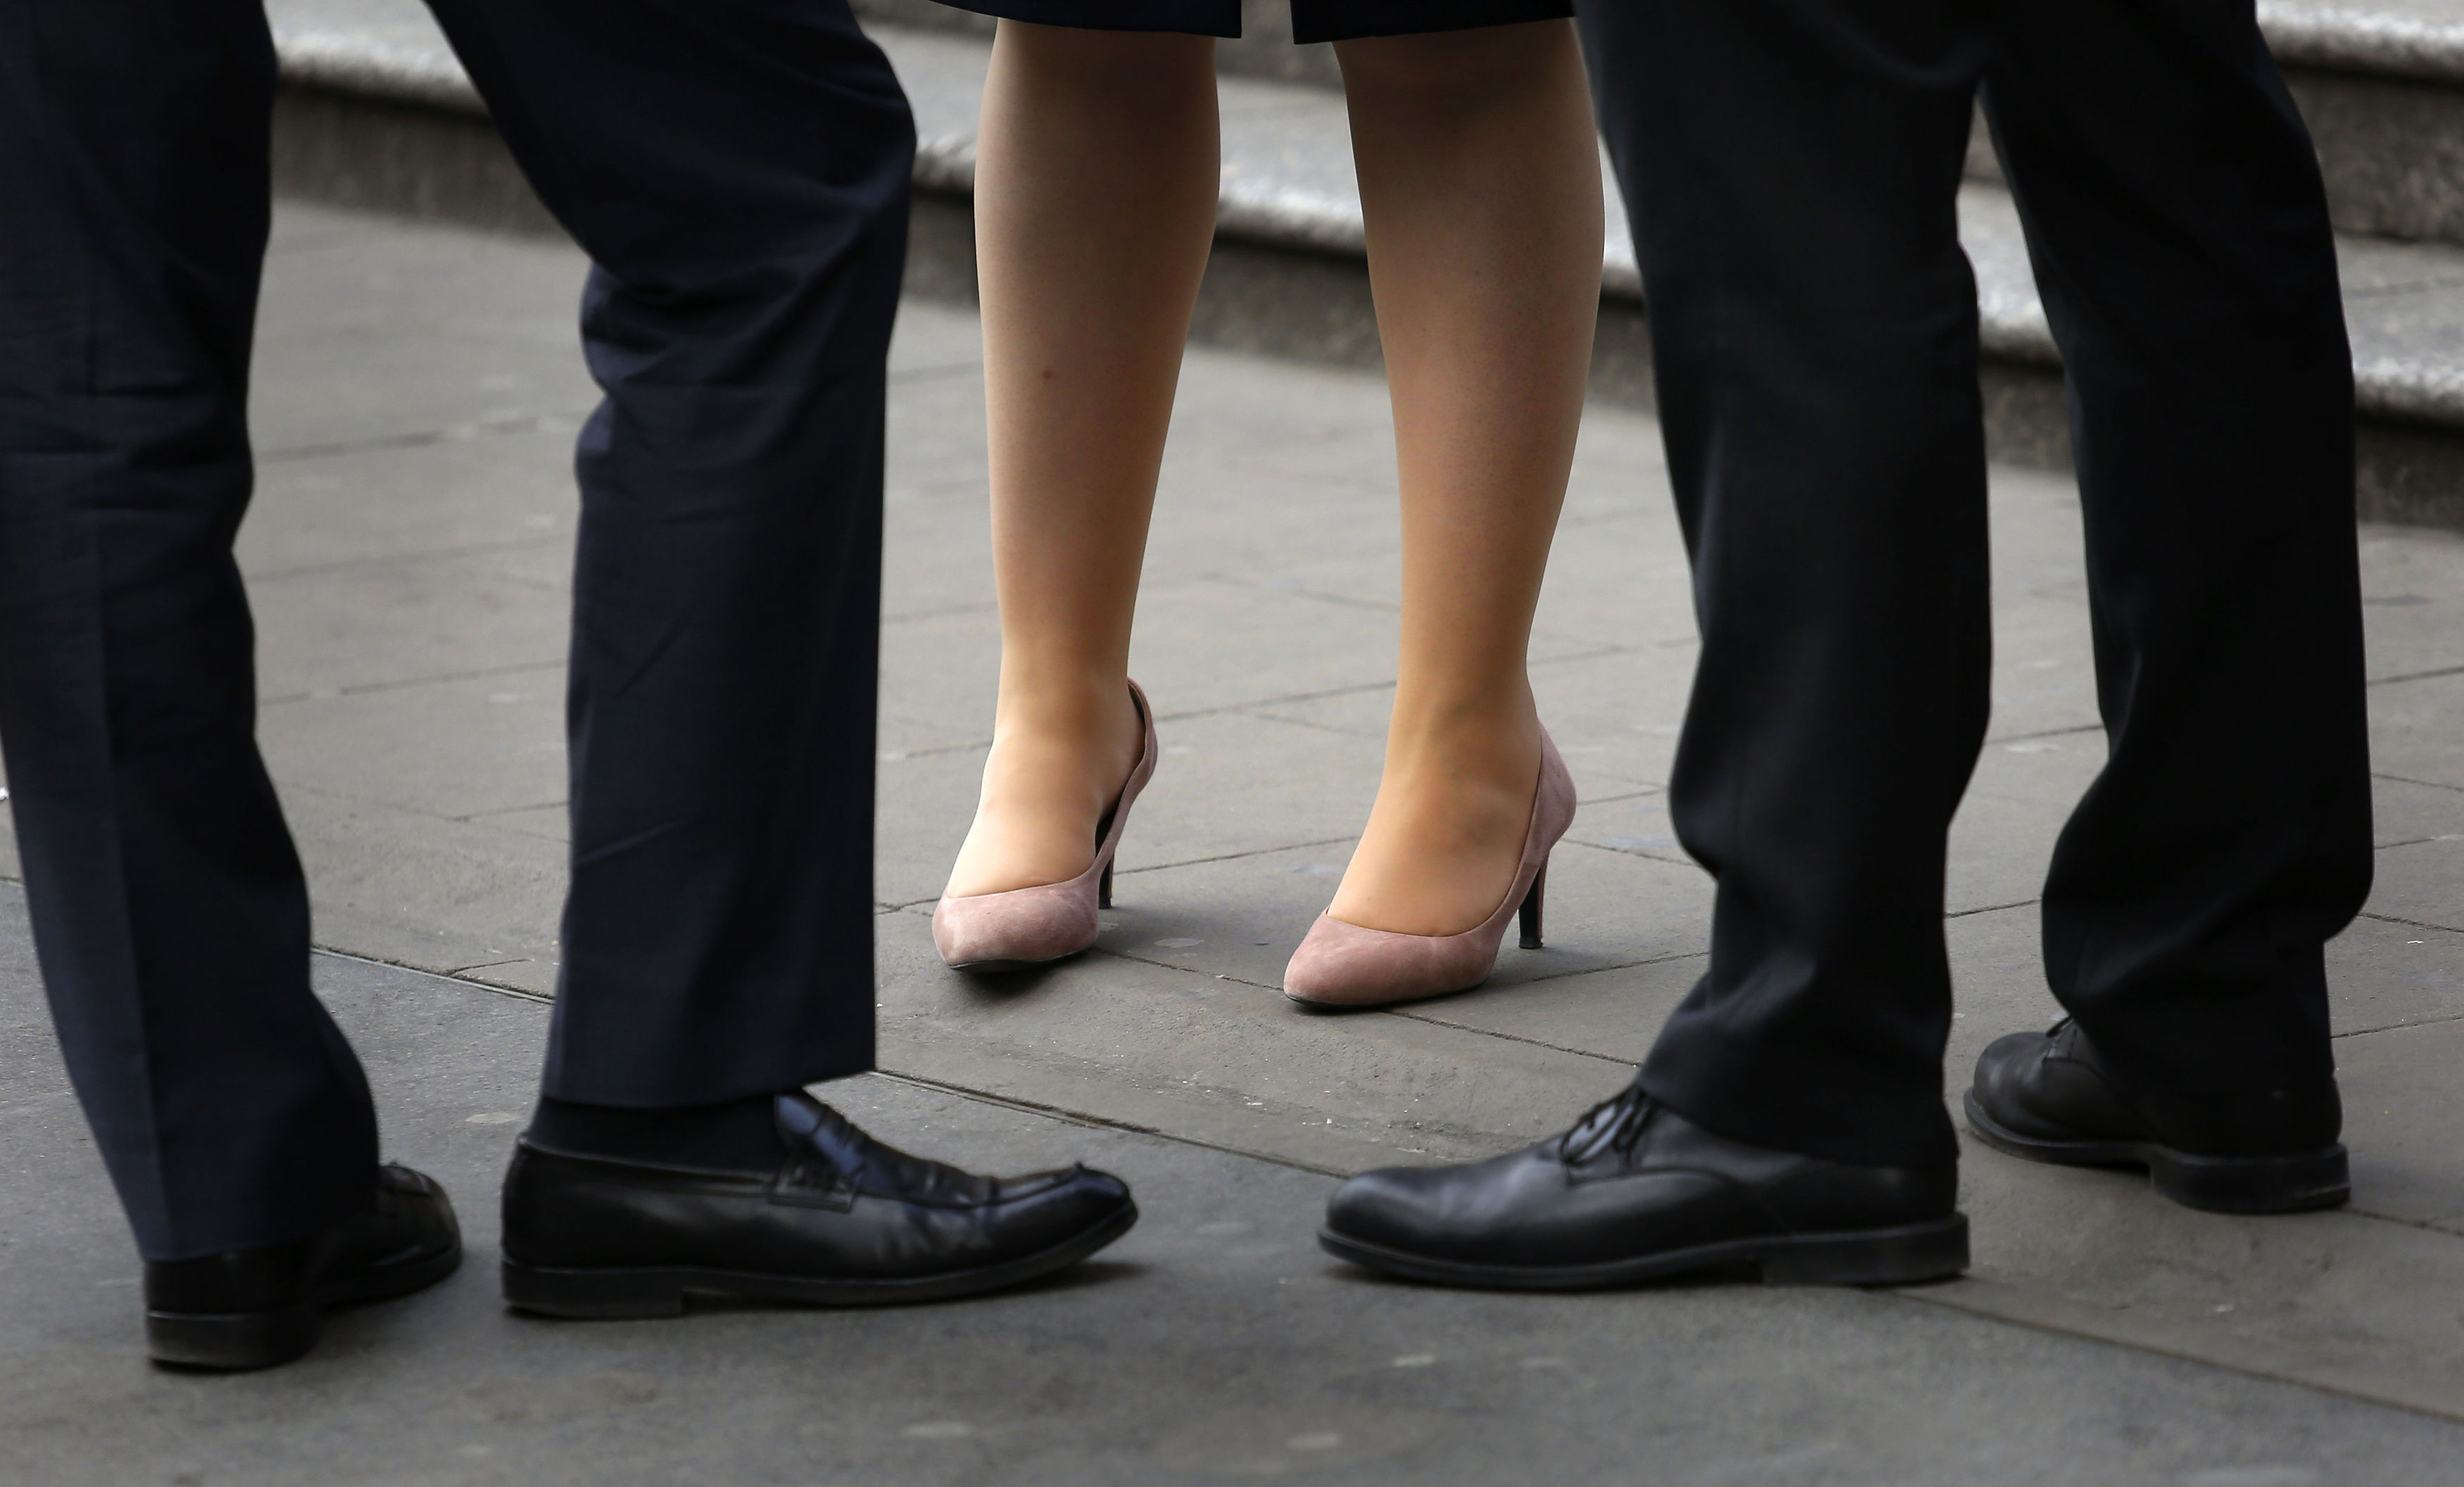 Research by the TUC found that women have effectively been working for free so far this year because of the gender pay gap. (Philip Toscano/PA Wire)